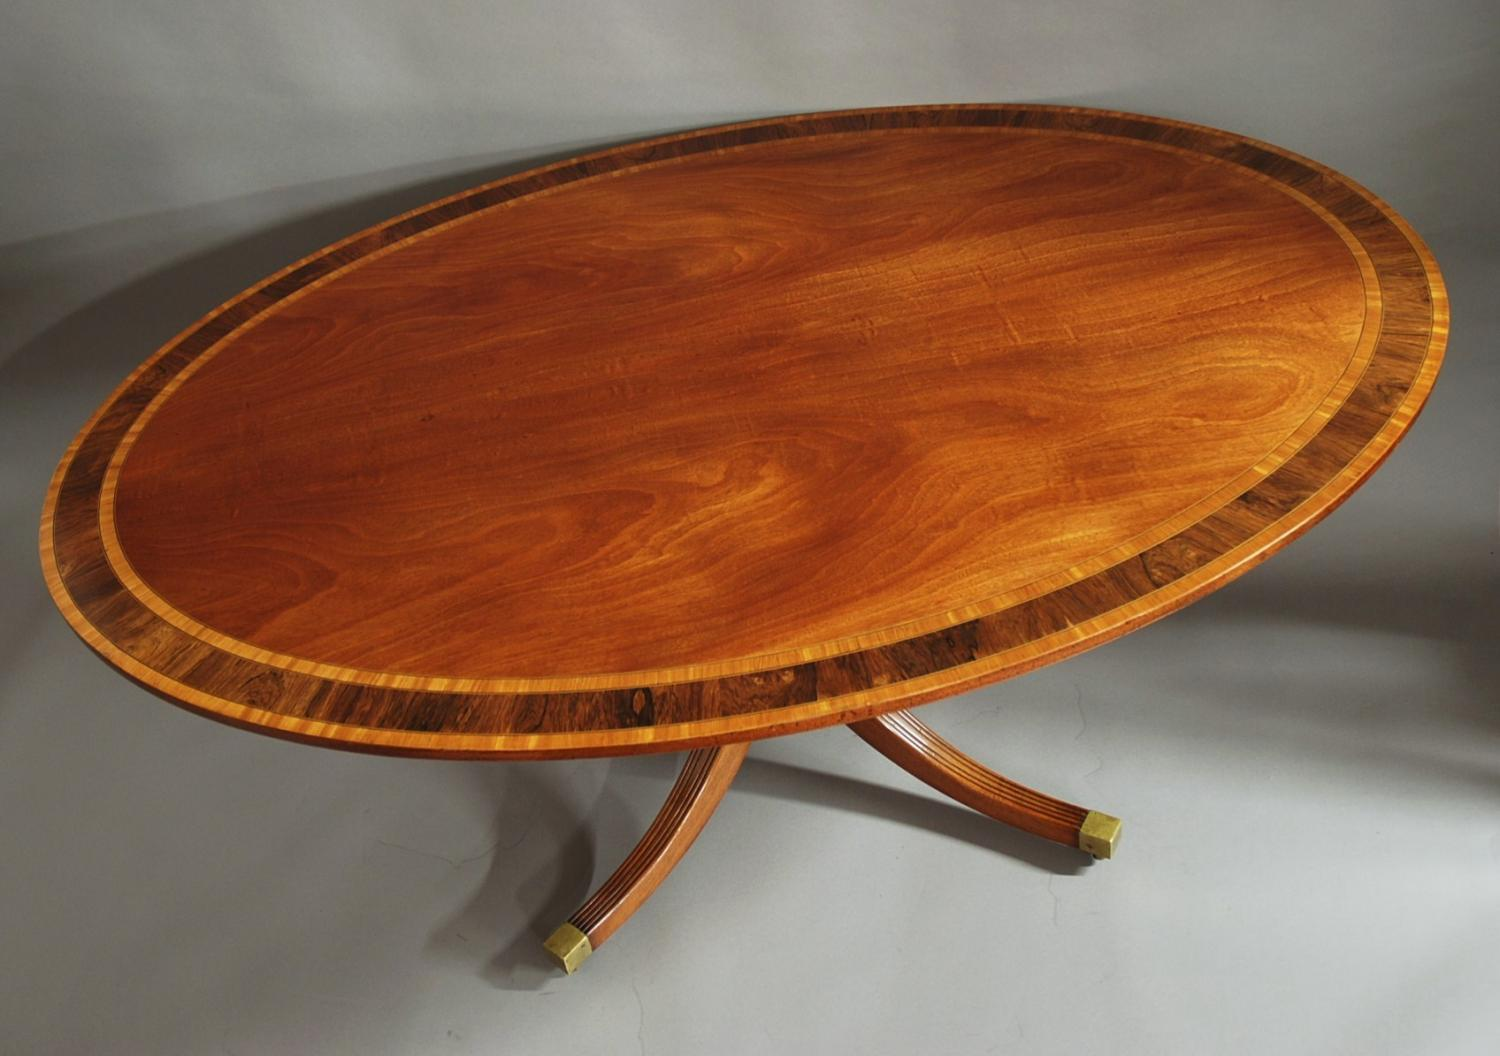 Superb quality mahogany oval breakfast table